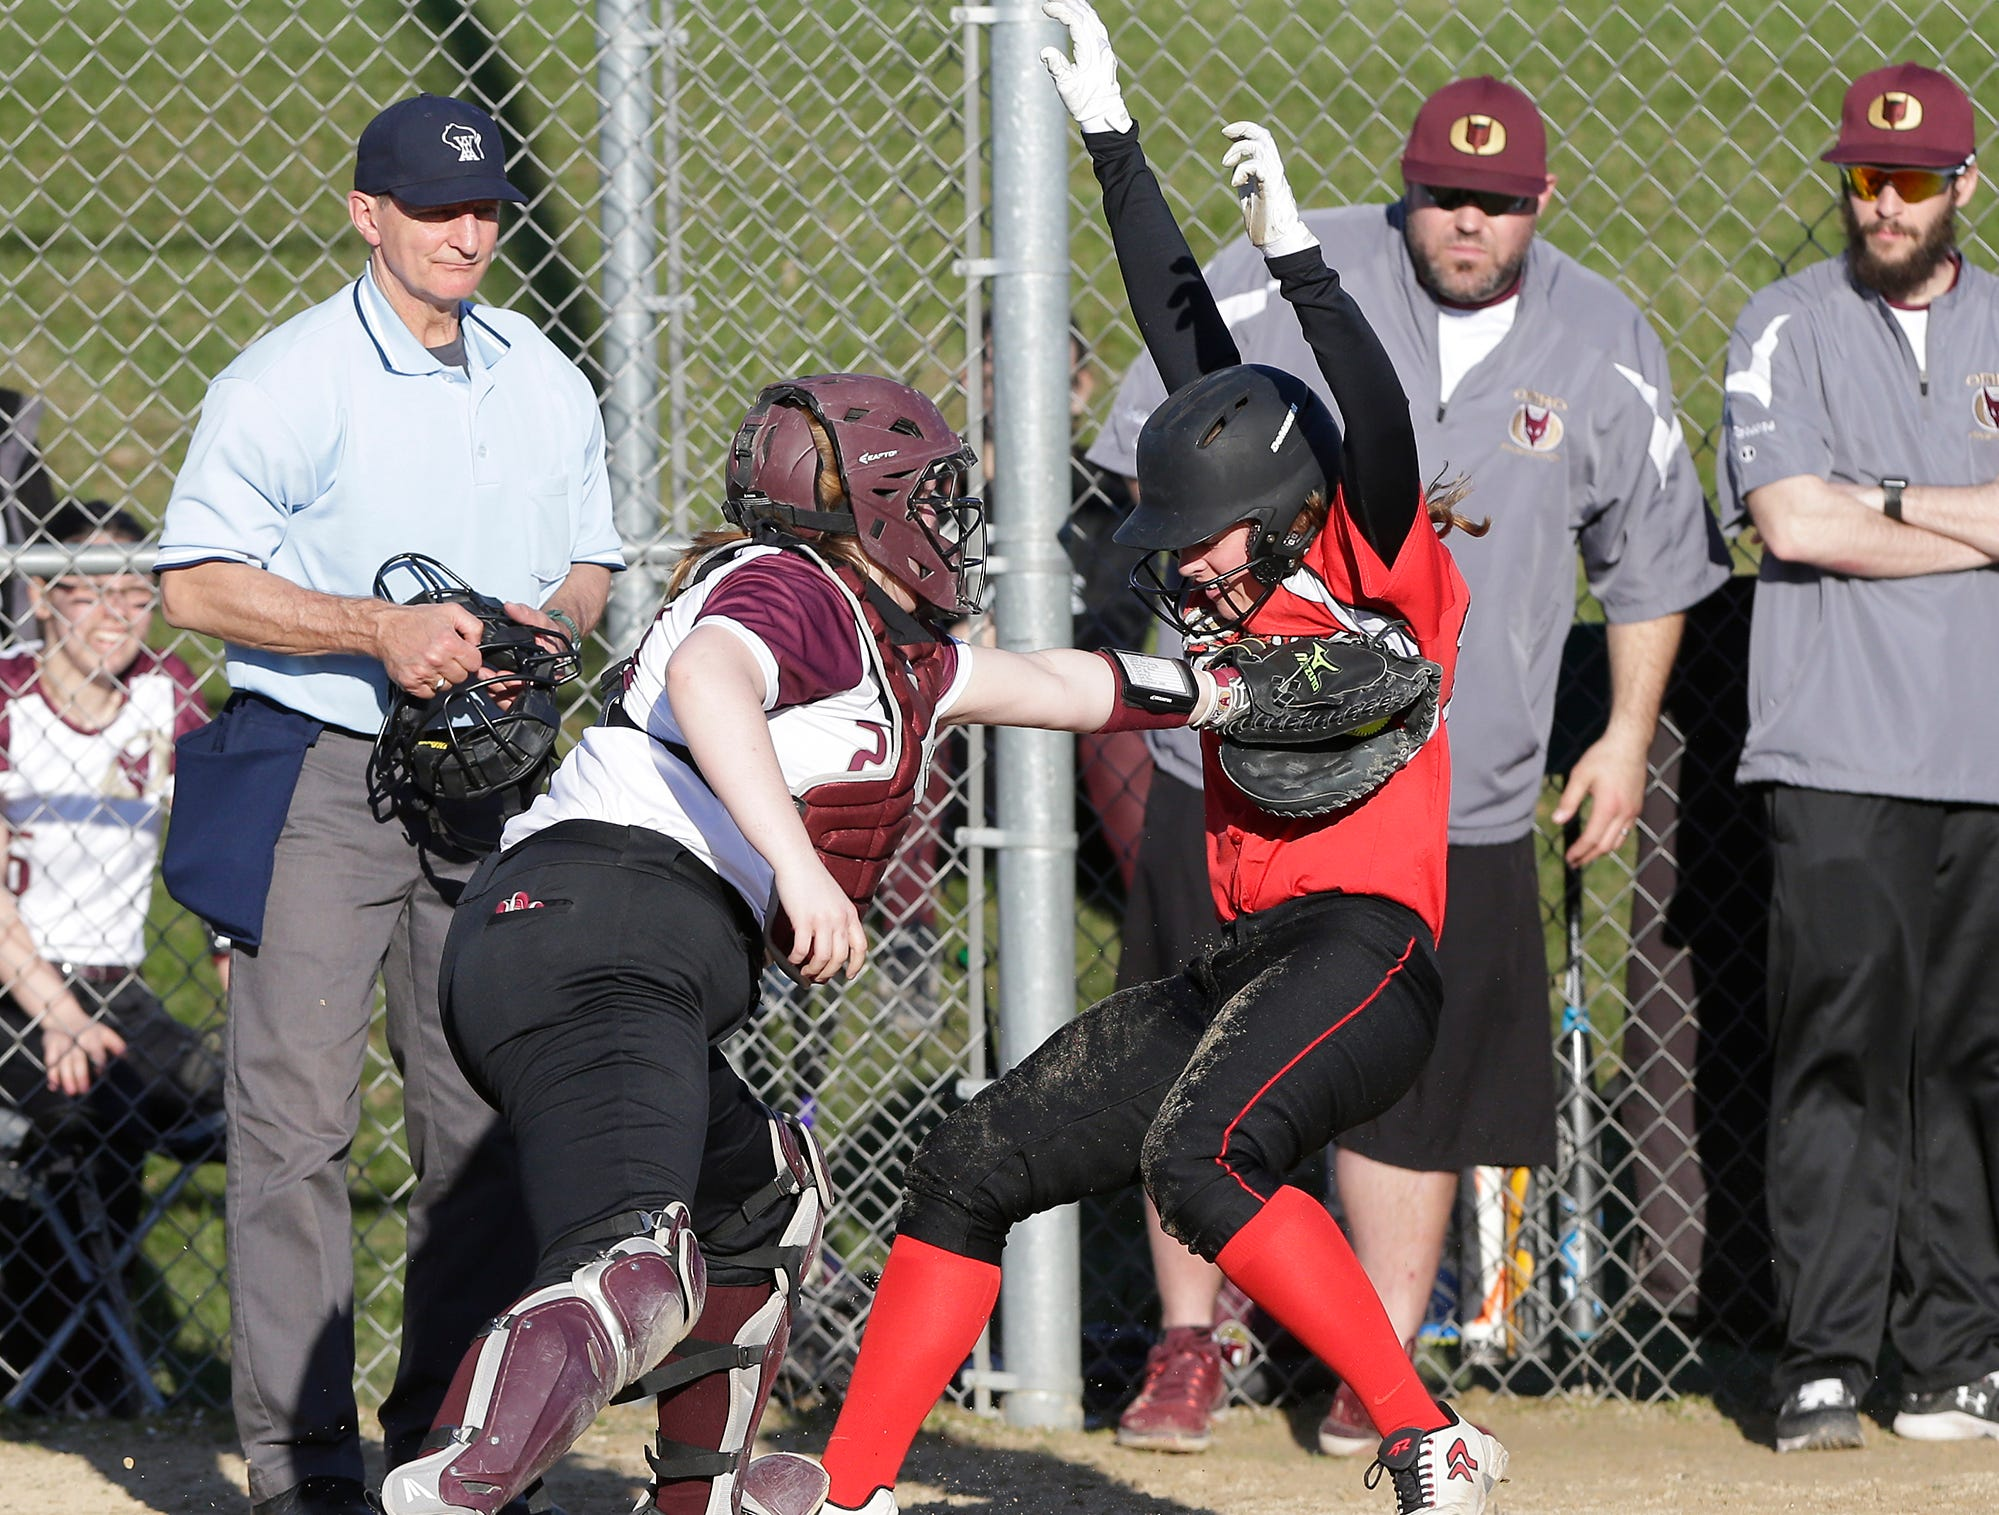 Omro High School softball's LeAnn Steinmates tags out a Lomira High School player at home plate during their game Tuesday, April 23, 2019 in Lomira, Wis. Doug Raflik/USA TODAY NETWORK-Wisconsin